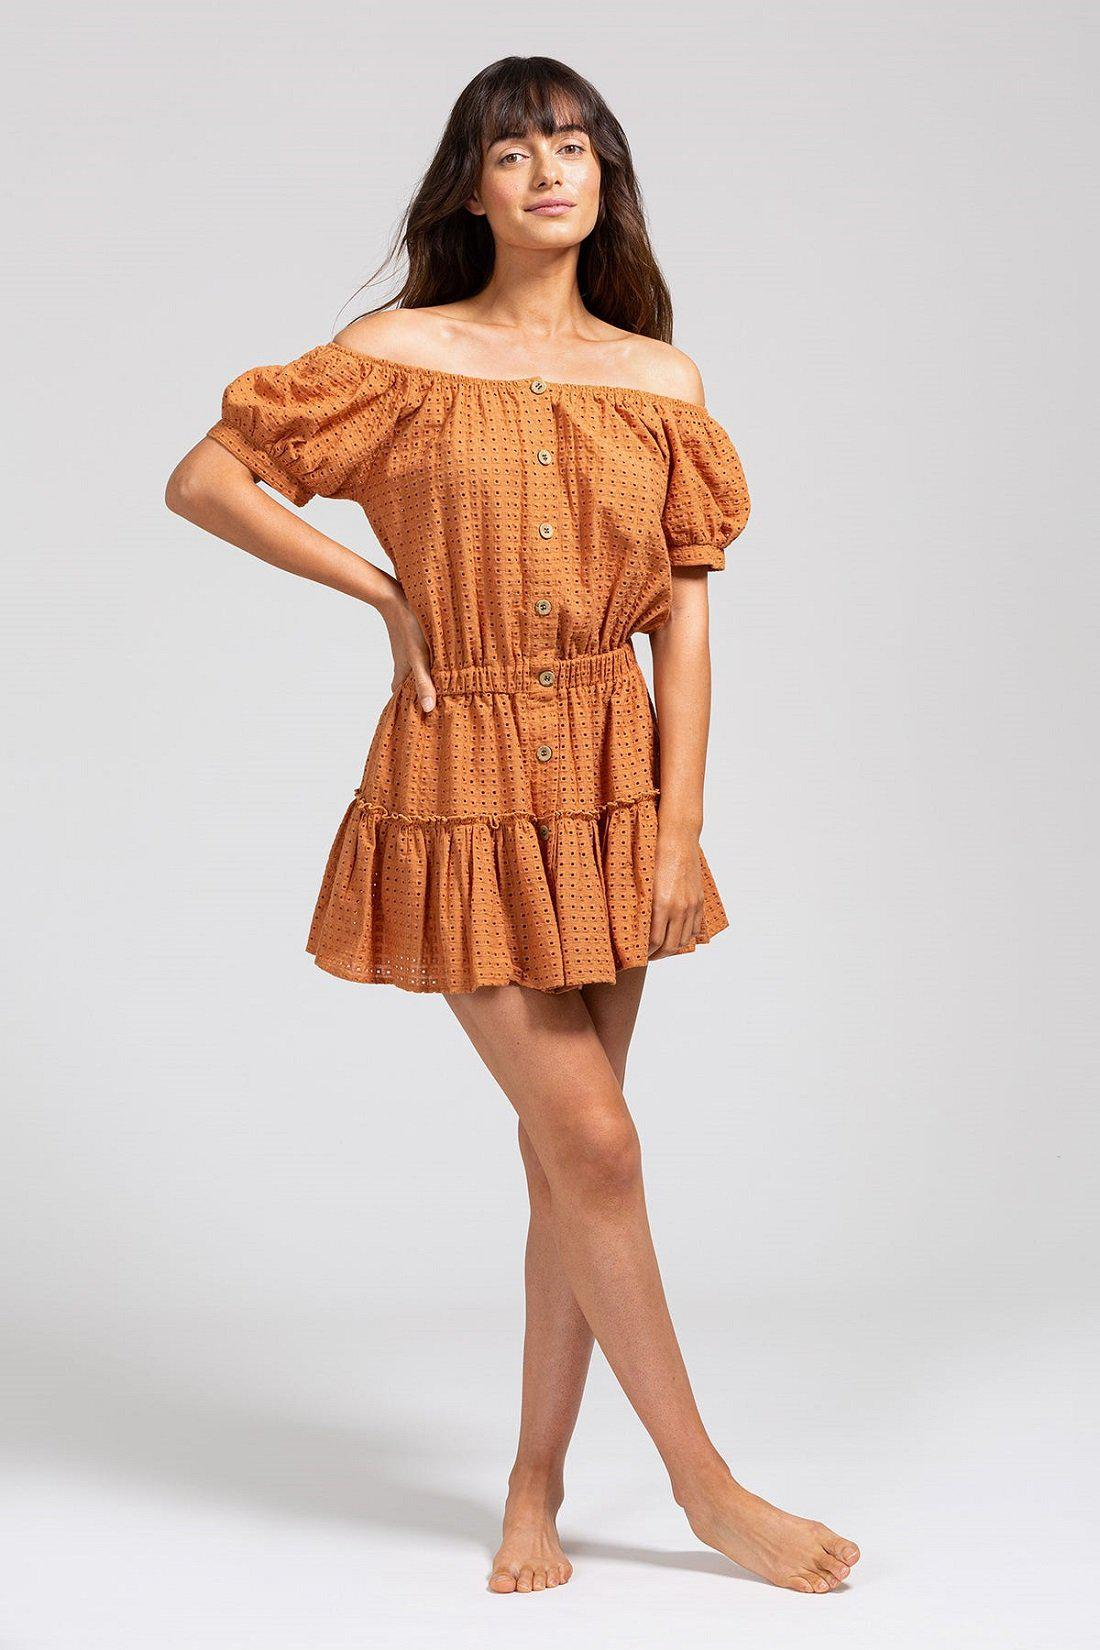 Elsie Cotton Eyelet Cover-Up - Pecan